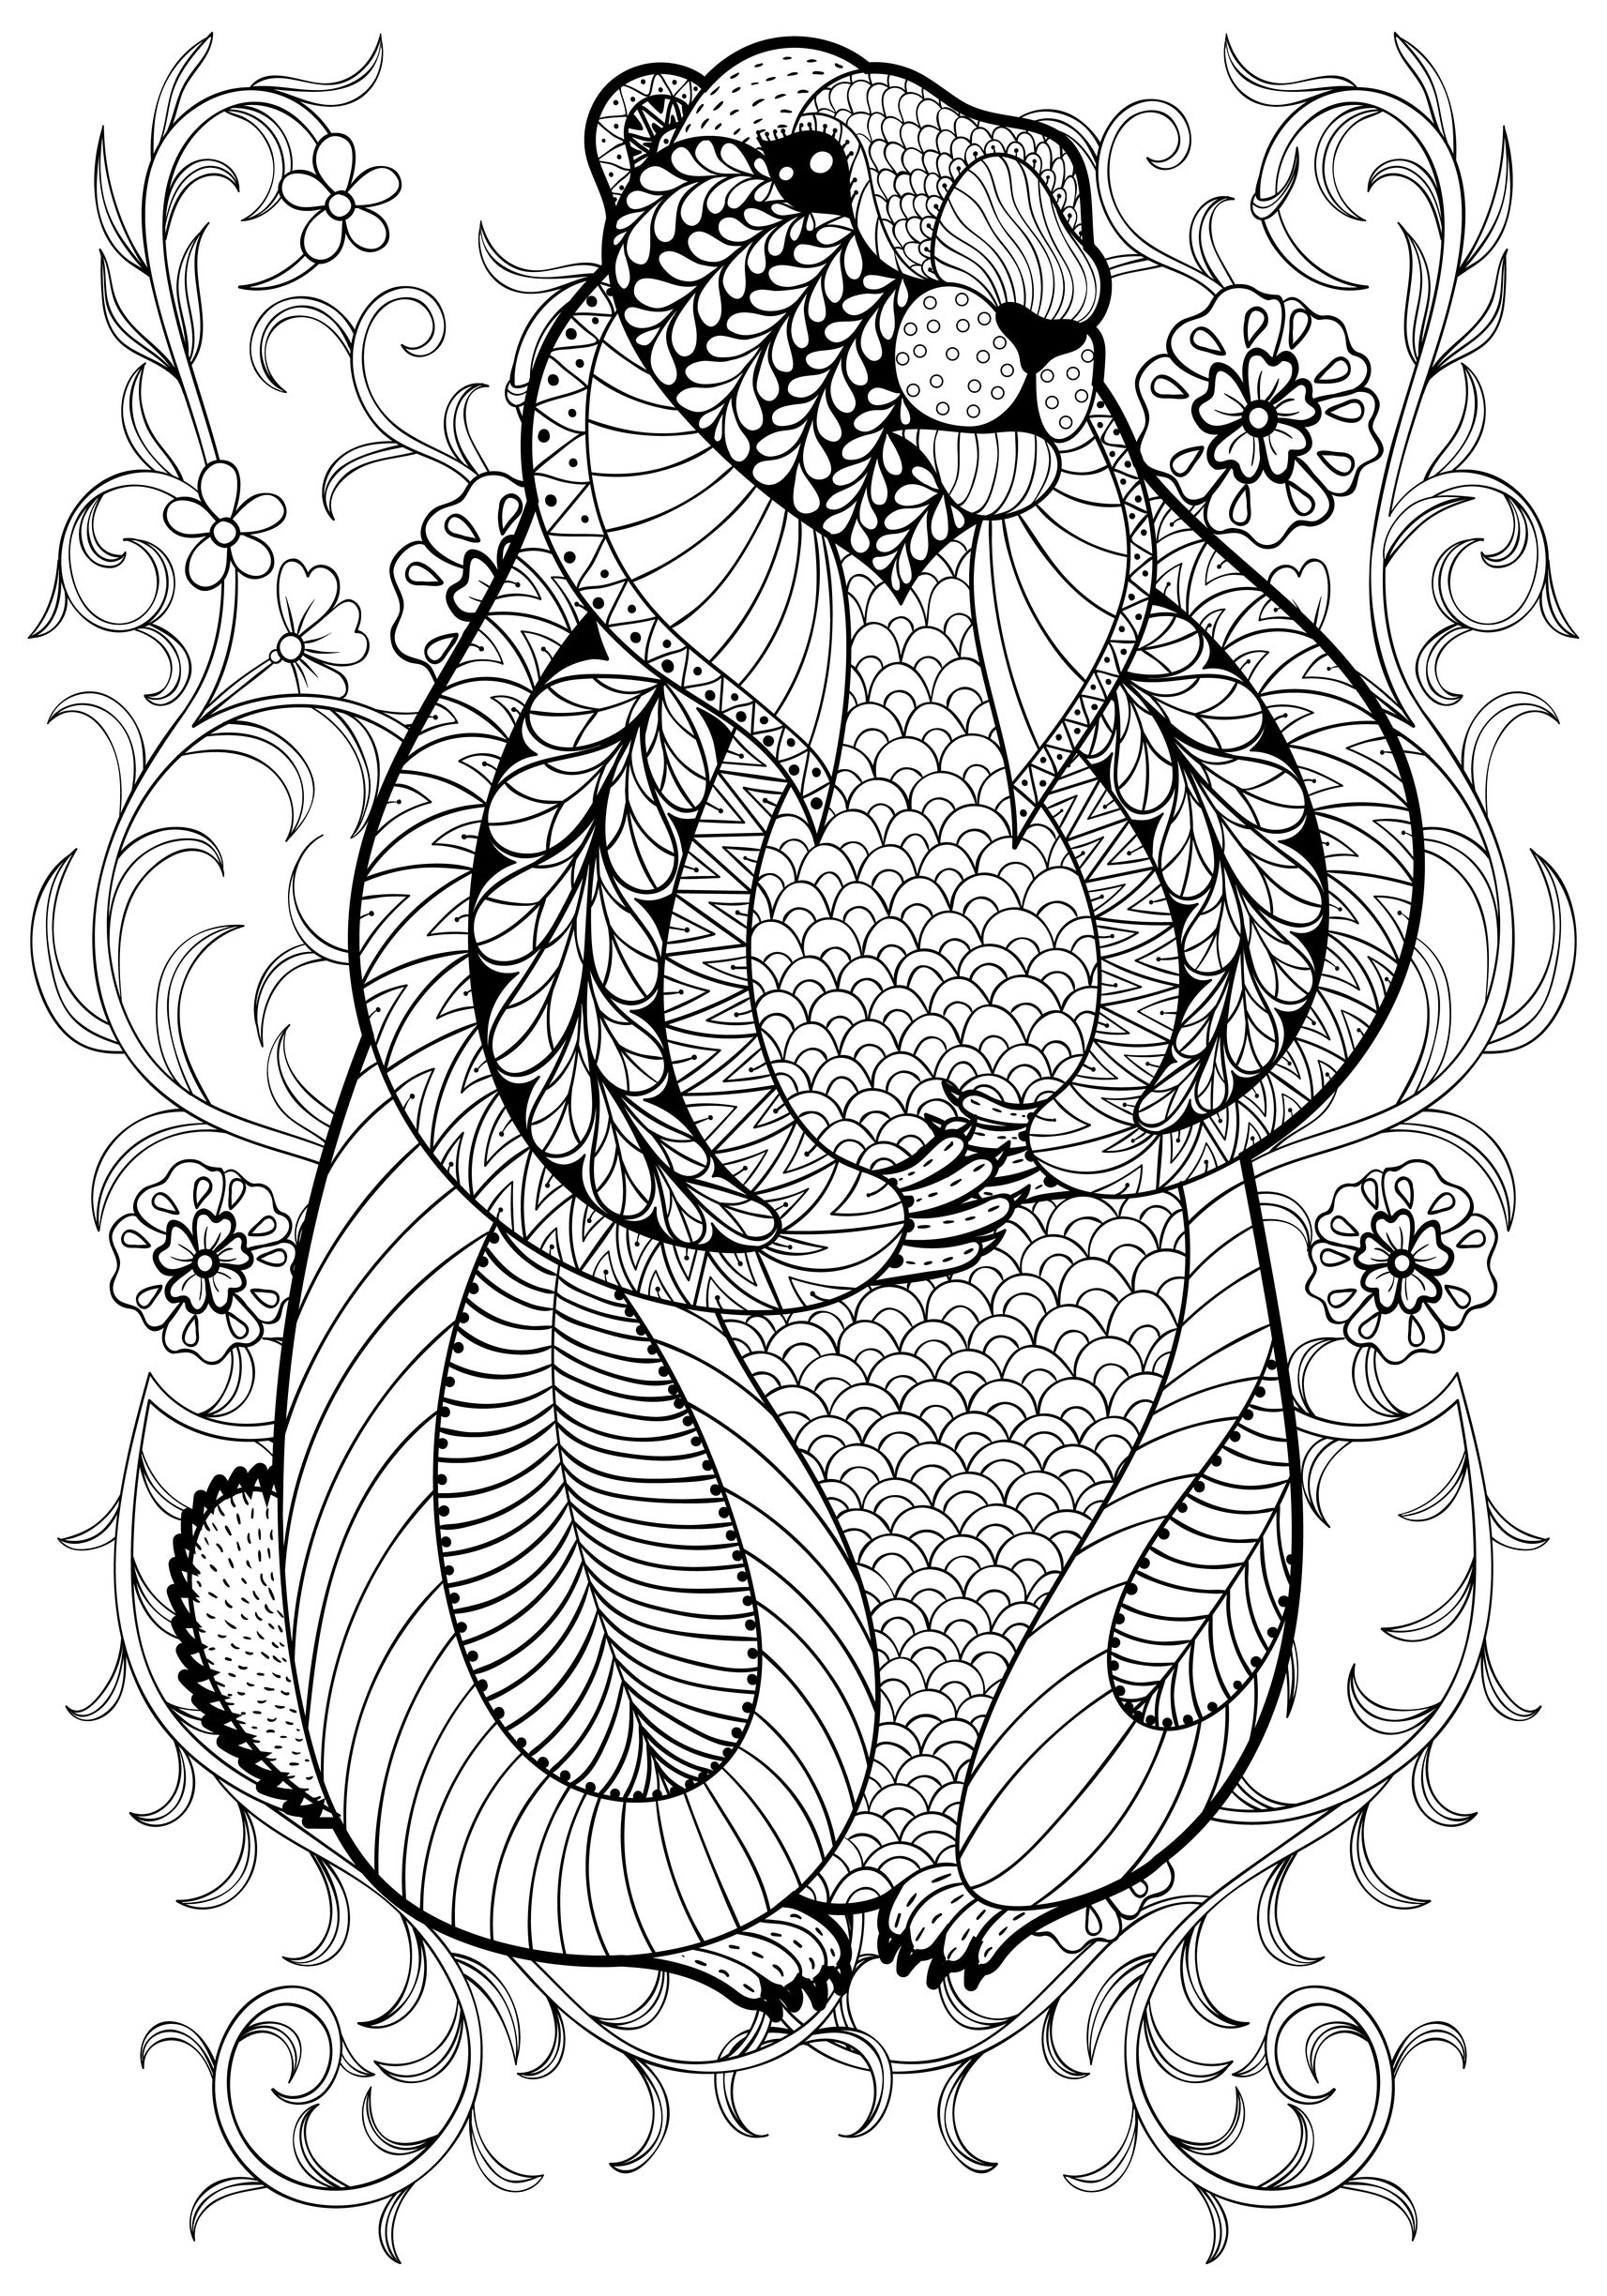 pages marmot by ipanki animals coloring pages for adults justcolor. Black Bedroom Furniture Sets. Home Design Ideas